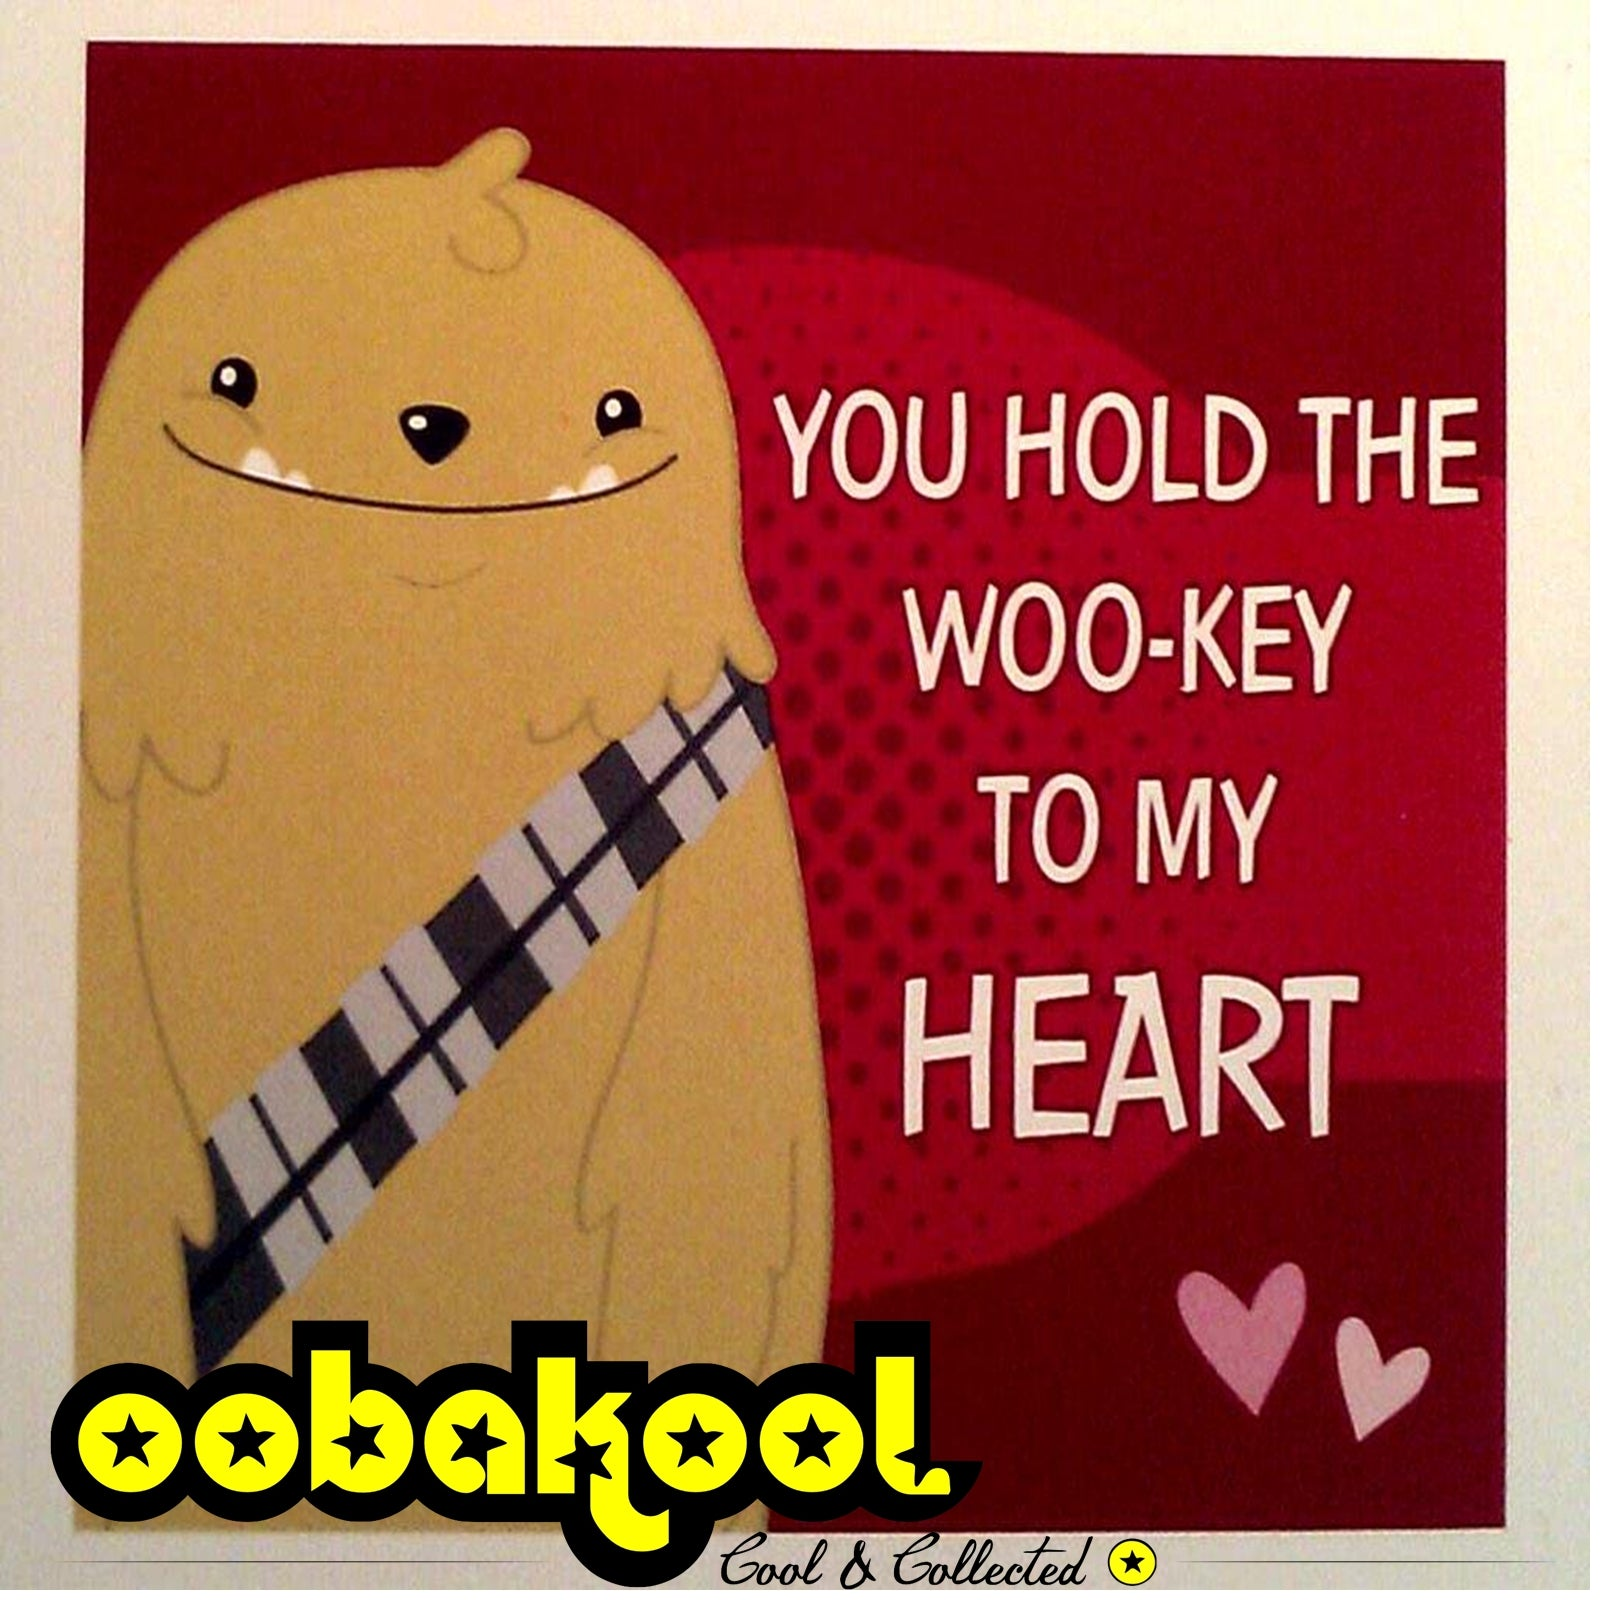 The Ideal Valentine's Gift For The OobaKool Man In Your Life!